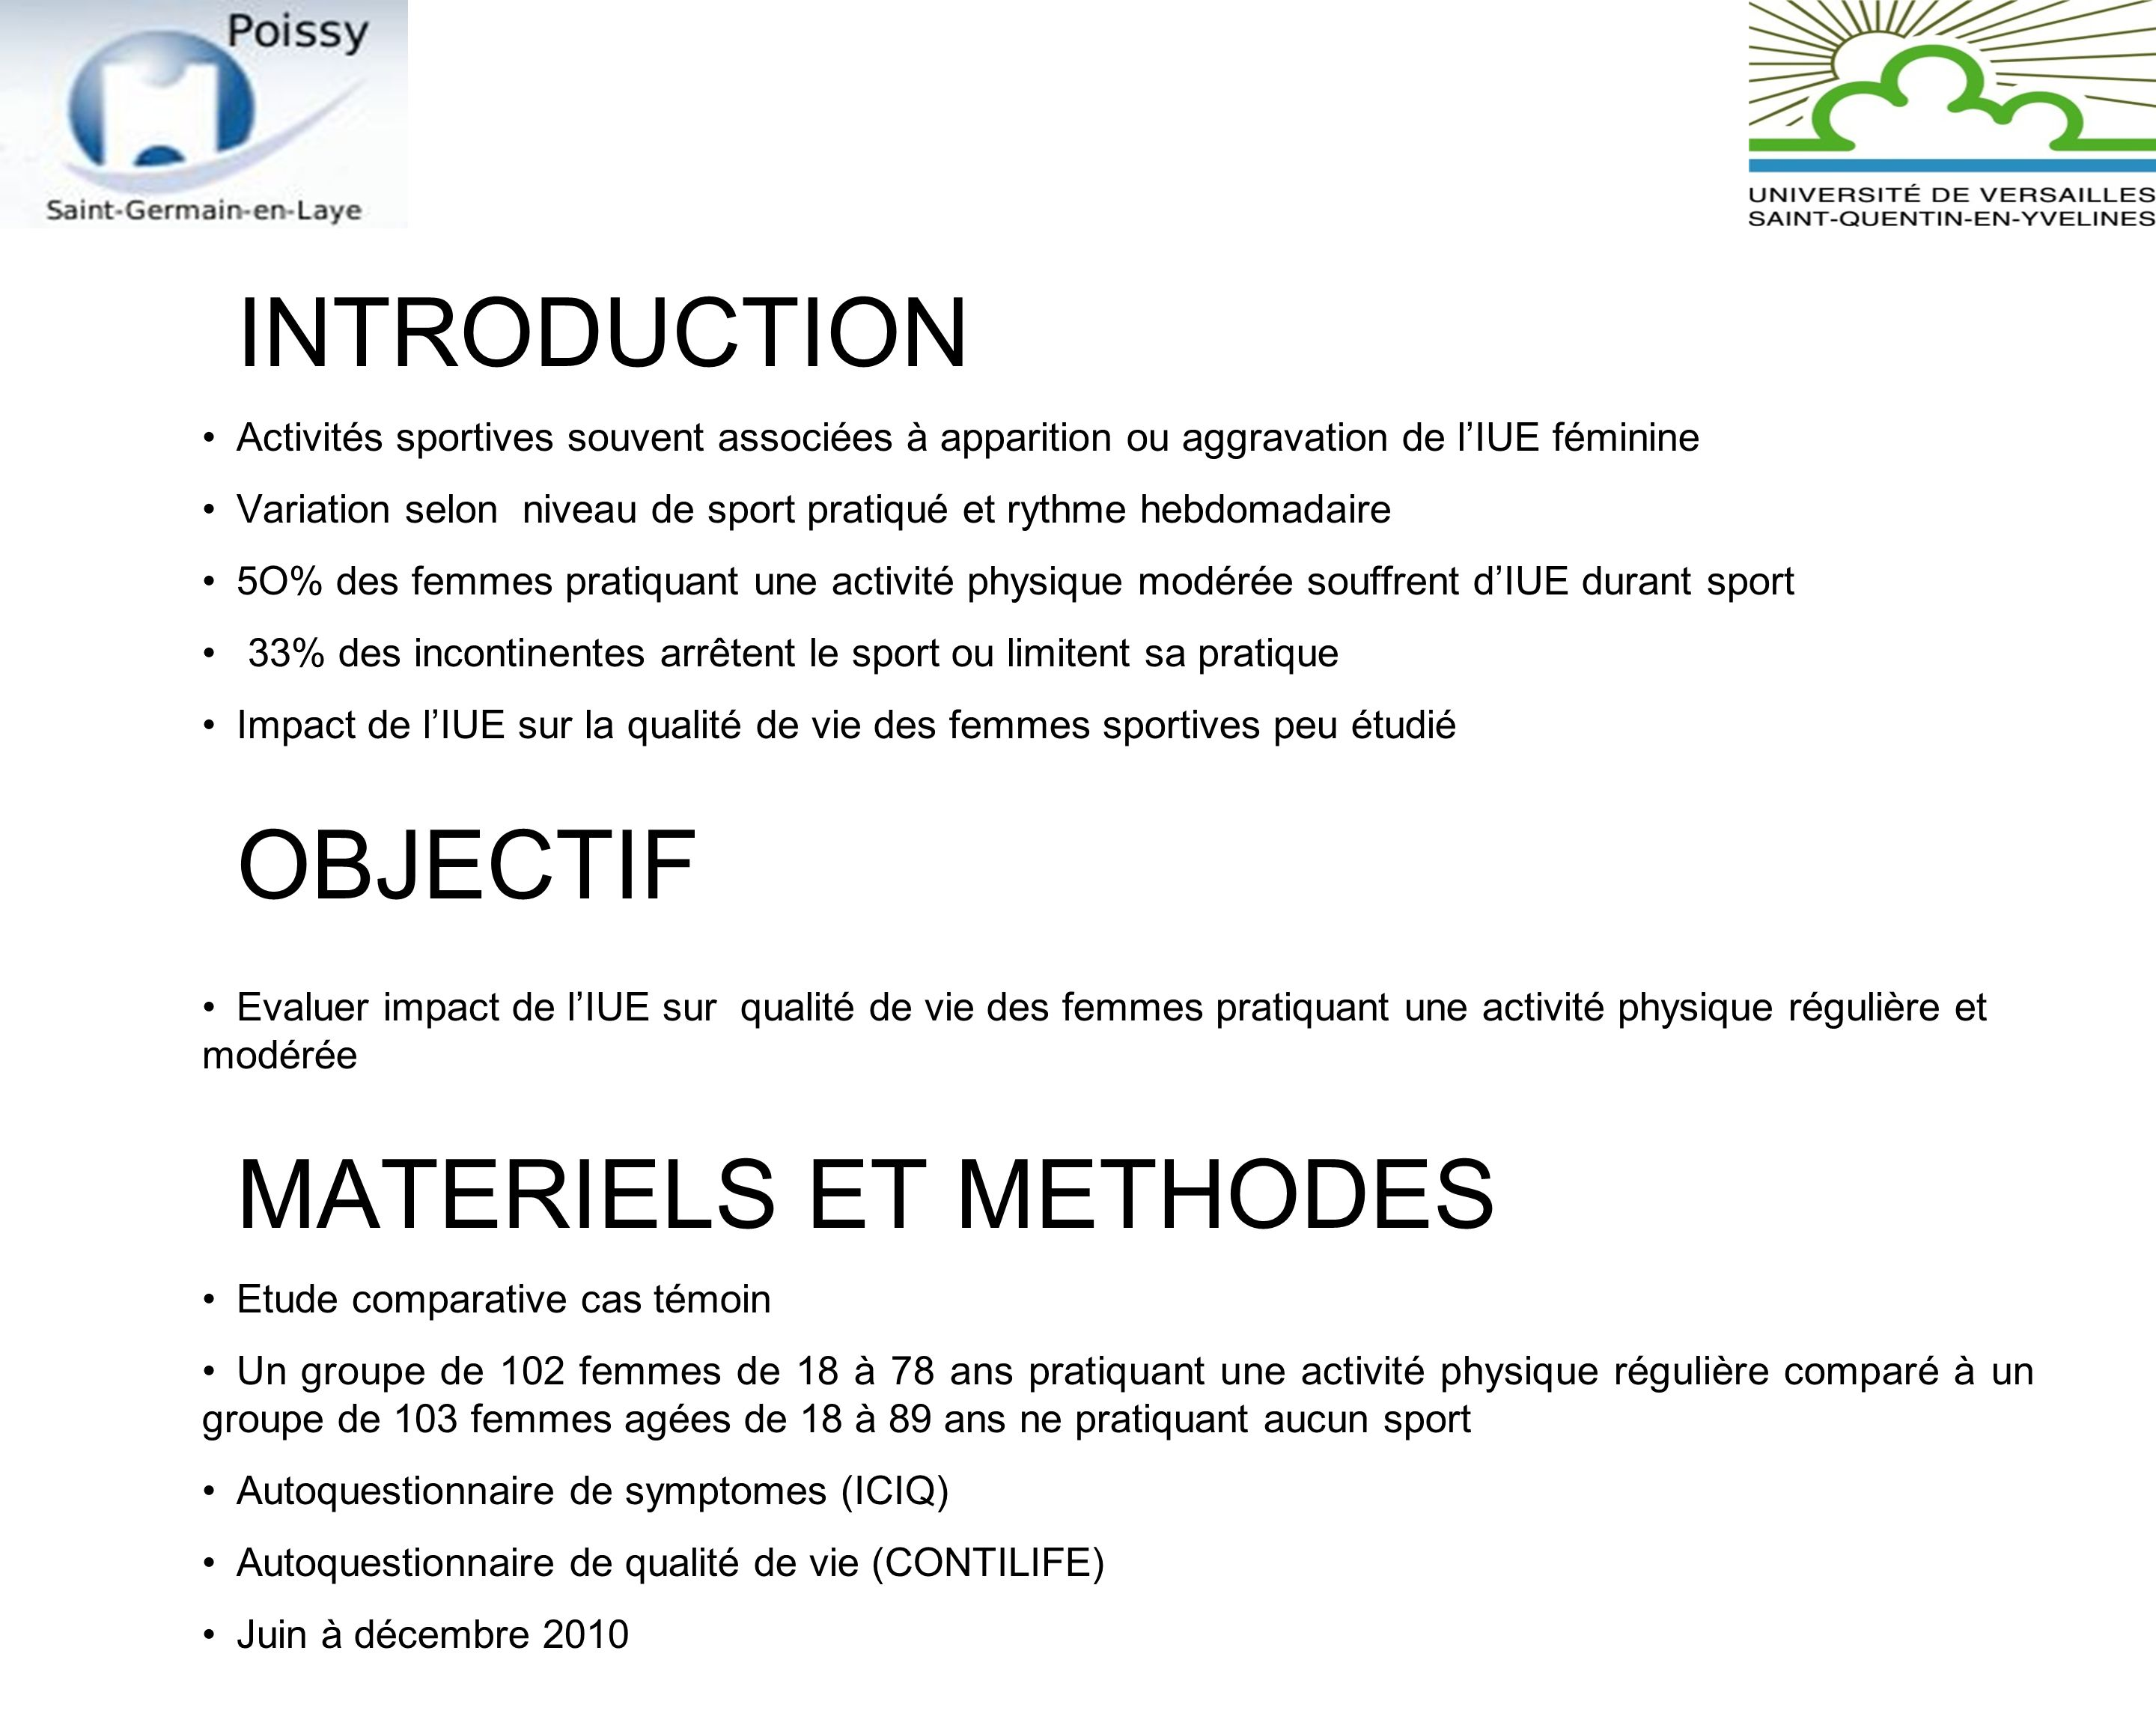 INTRODUCTION OBJECTIF MATERIELS ET METHODES